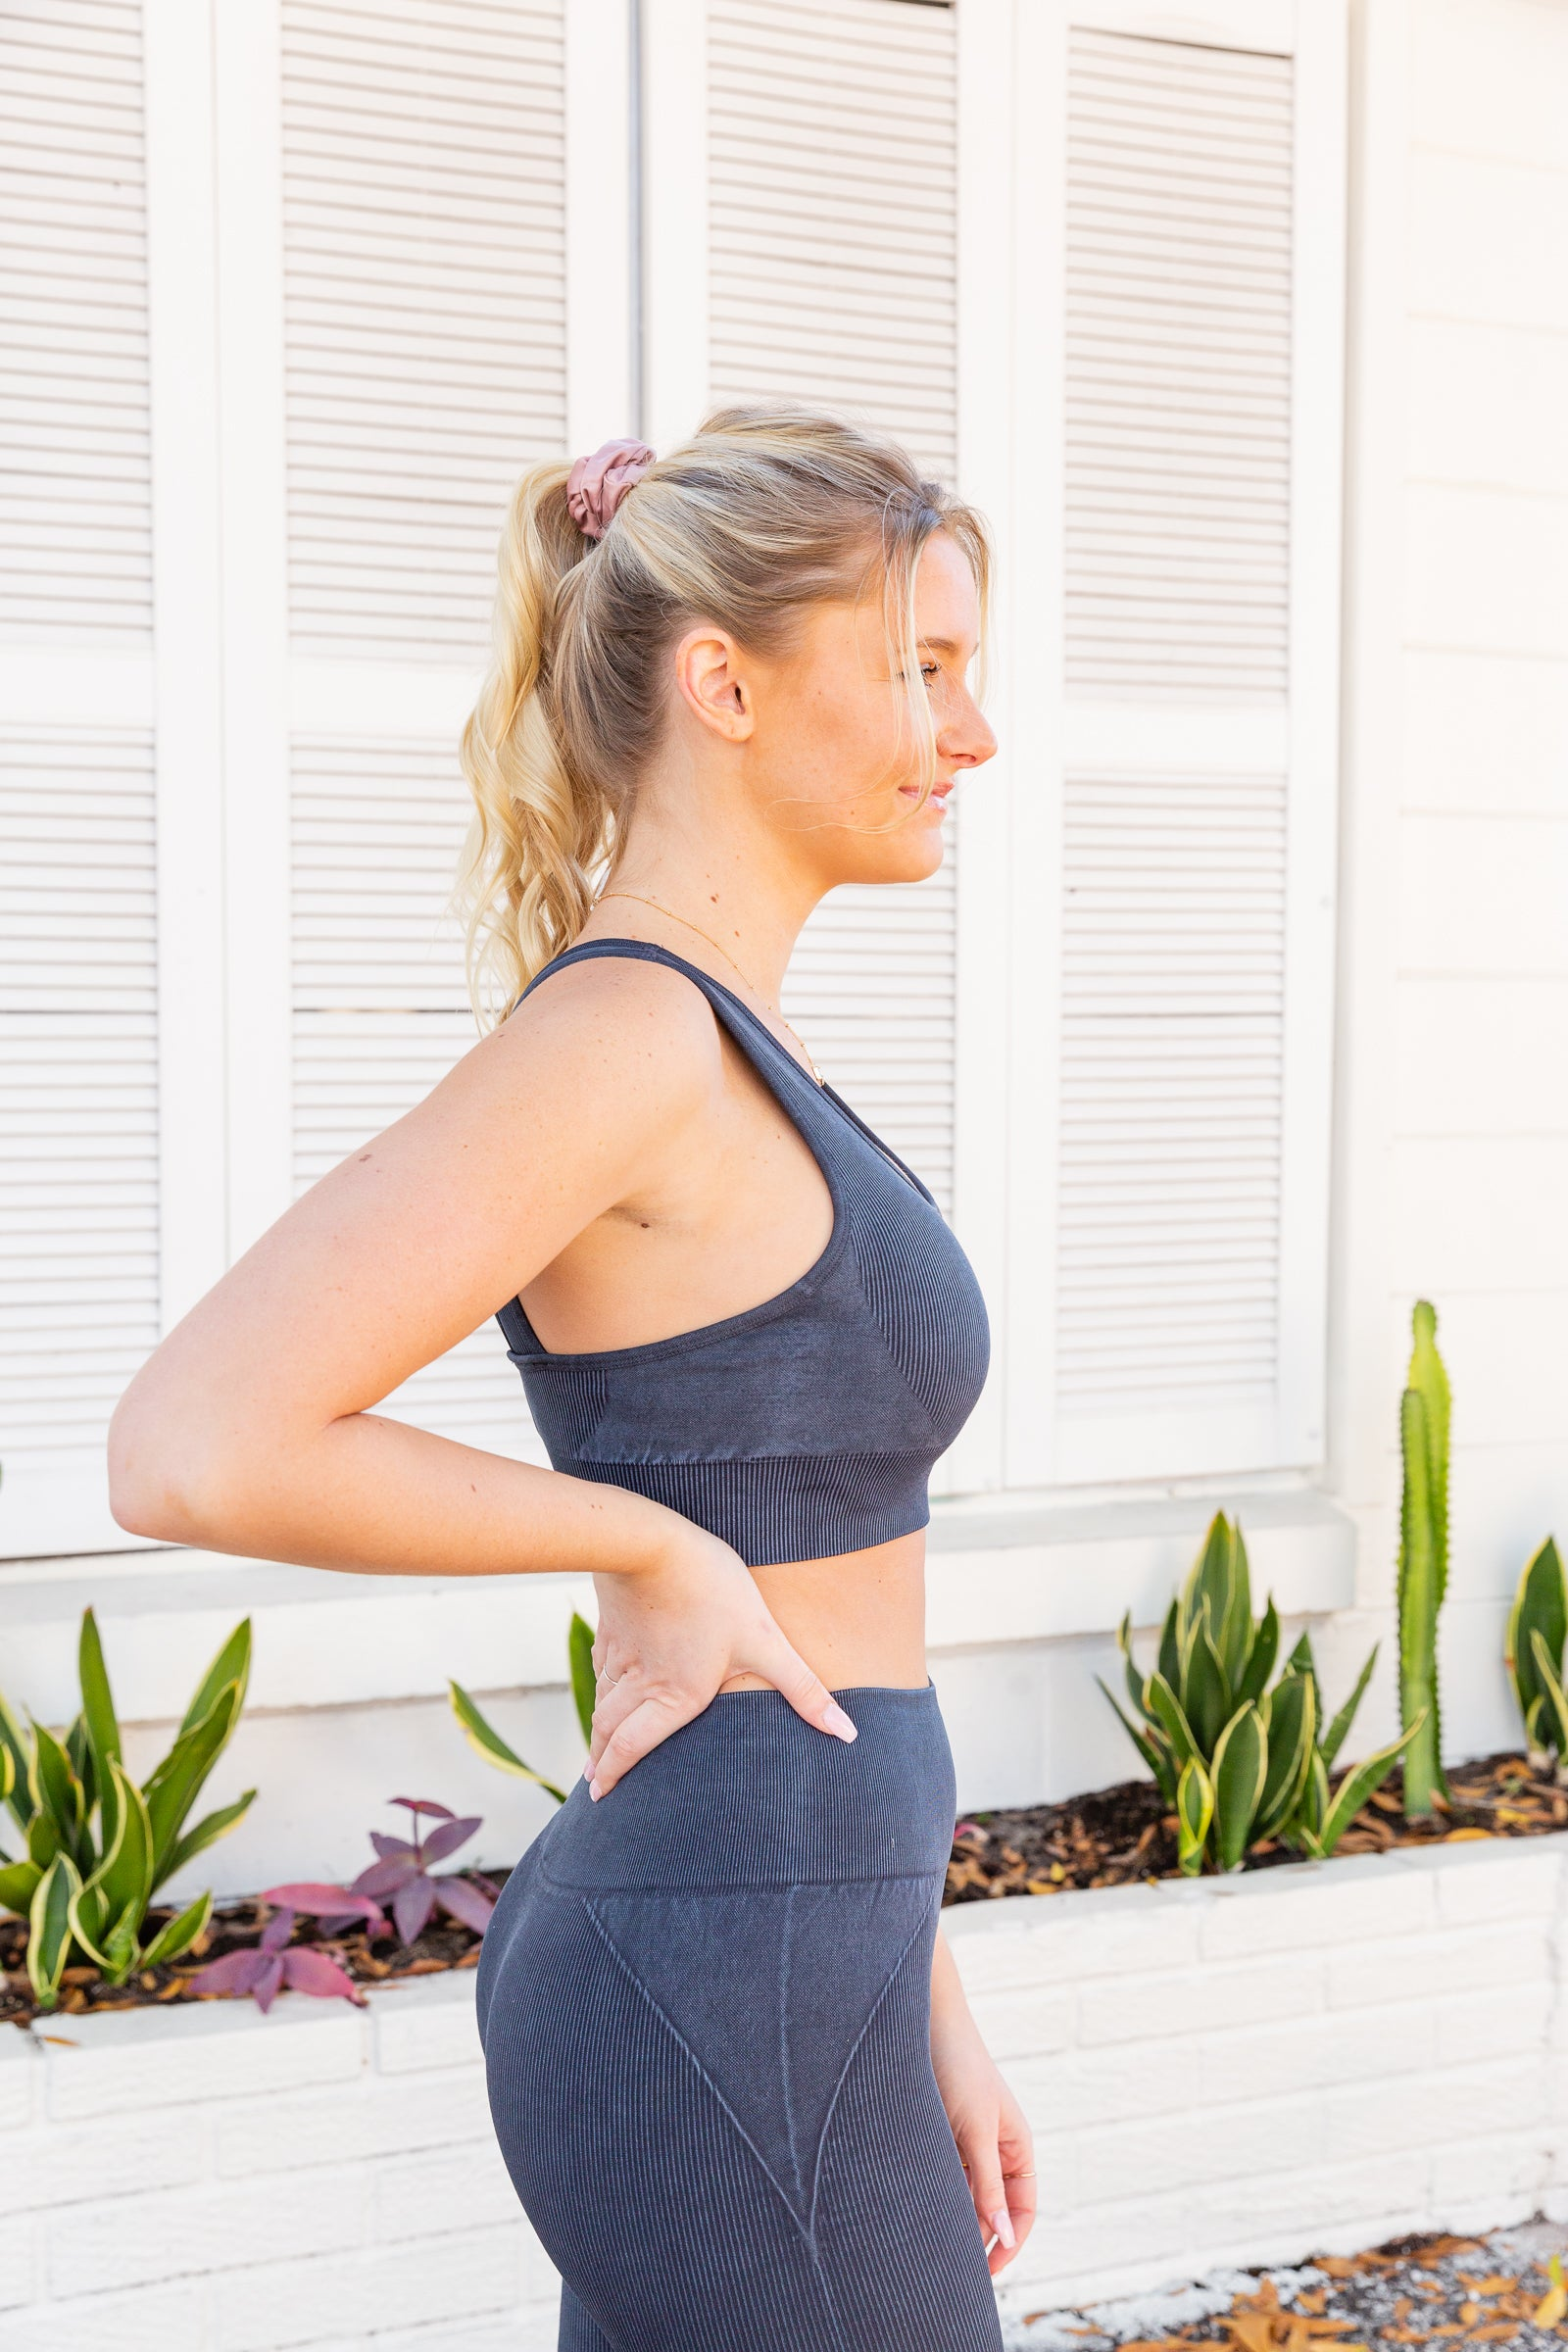 Medium straps attach to a u-neckline on comfy ribbed fabric before meeting a thick band. On the back, the ribbed sports bra's straps attach to the side to have an exposed back.